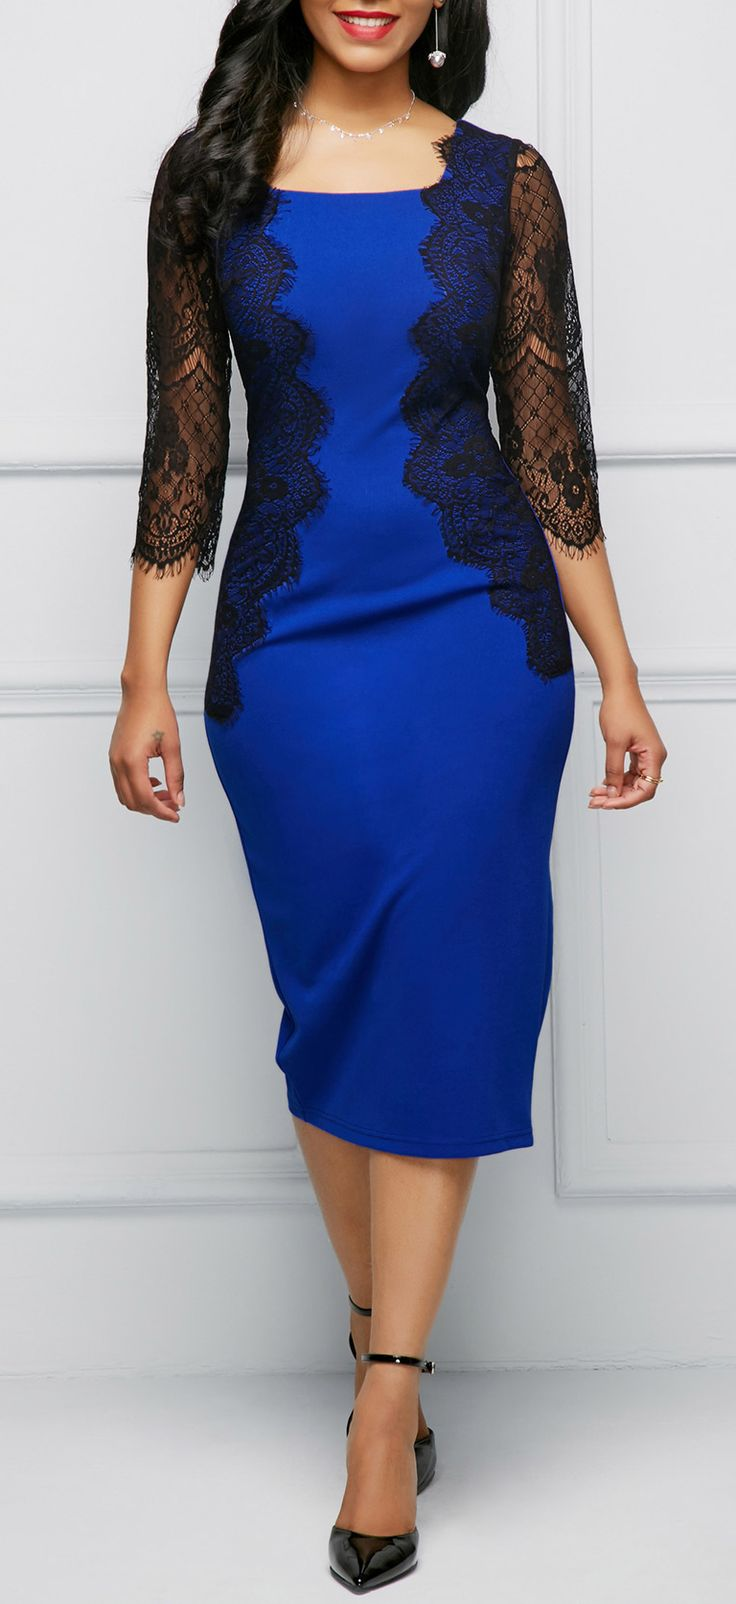 Lace Panel Three Quarter Sleeve Blue Dress.